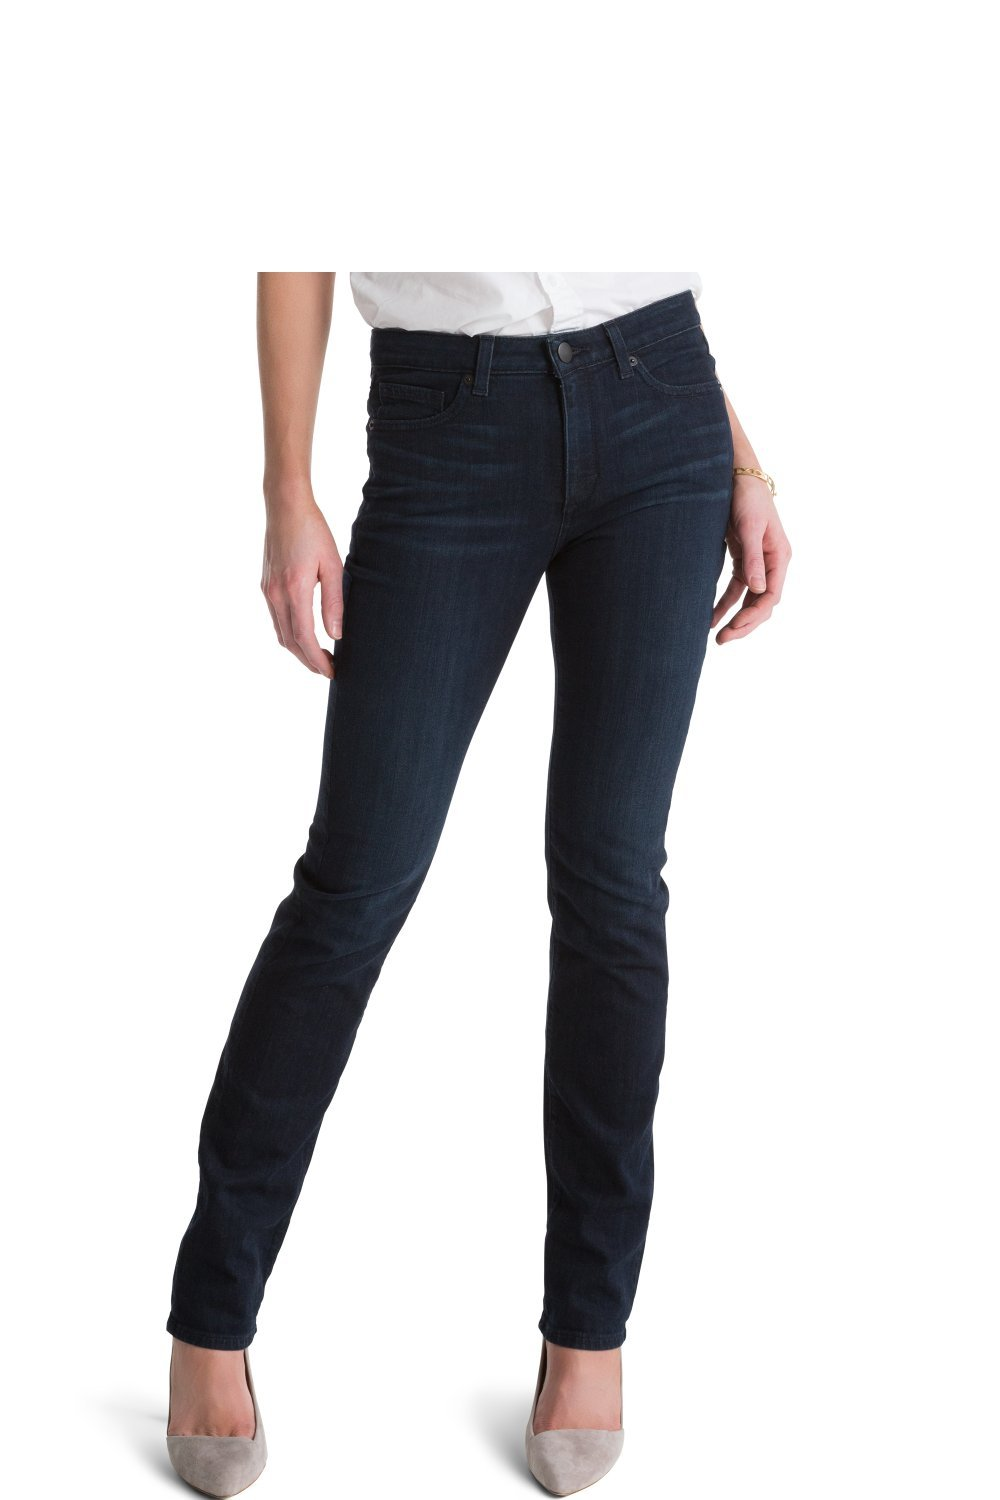 Spanx The Slim X Straight Womens Style: FD1114-DARK D Size: 27 by SPANX